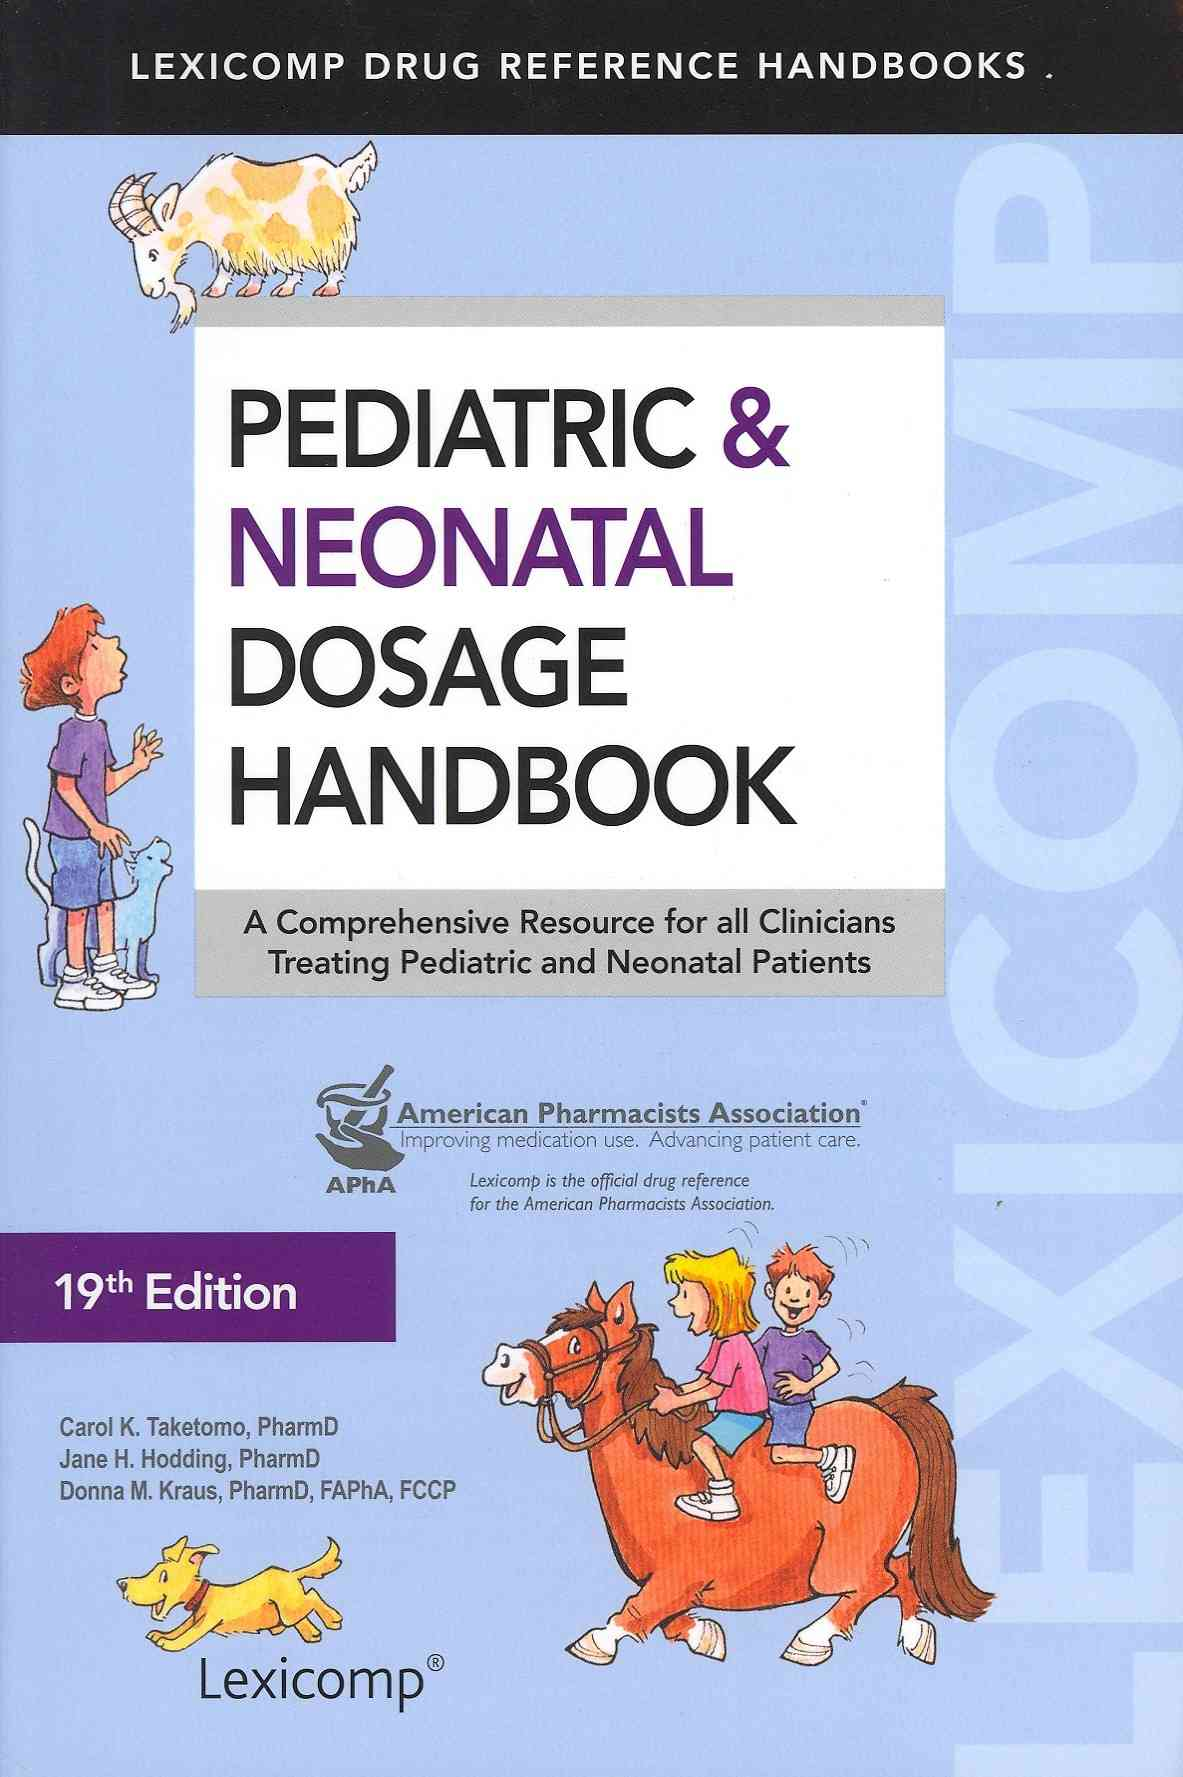 Pediatric & Neonatal Dosage Handbook: A Comprehensive Resource for all Clinicians Treating Pediatric and Neonatal... (Paperback)